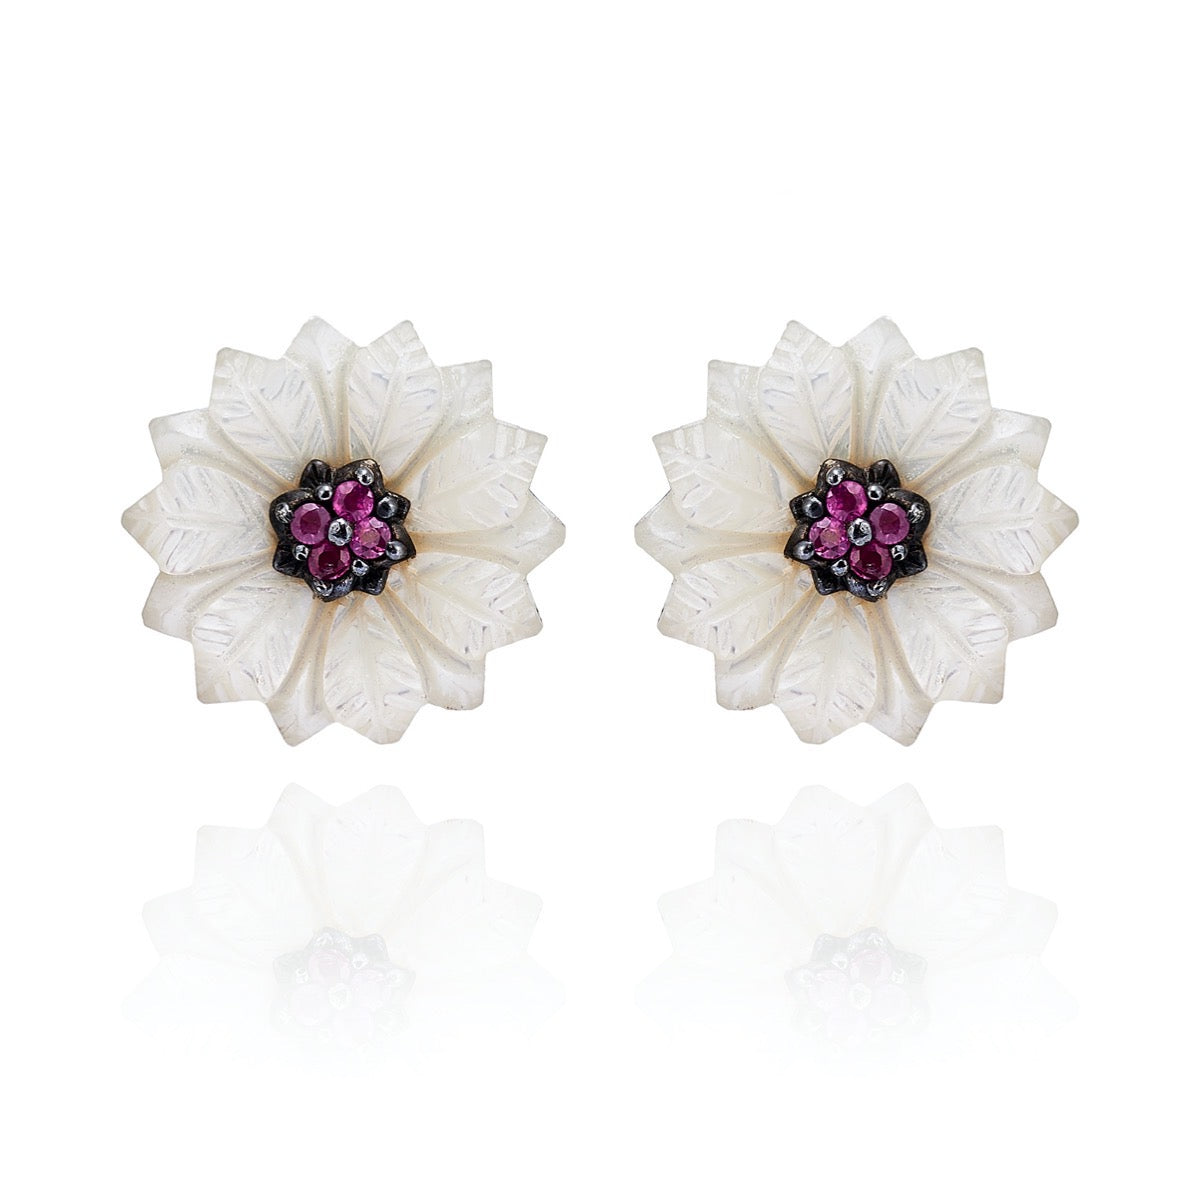 Hand Carved Mother of Pearl Ruby Flower Stud Earring